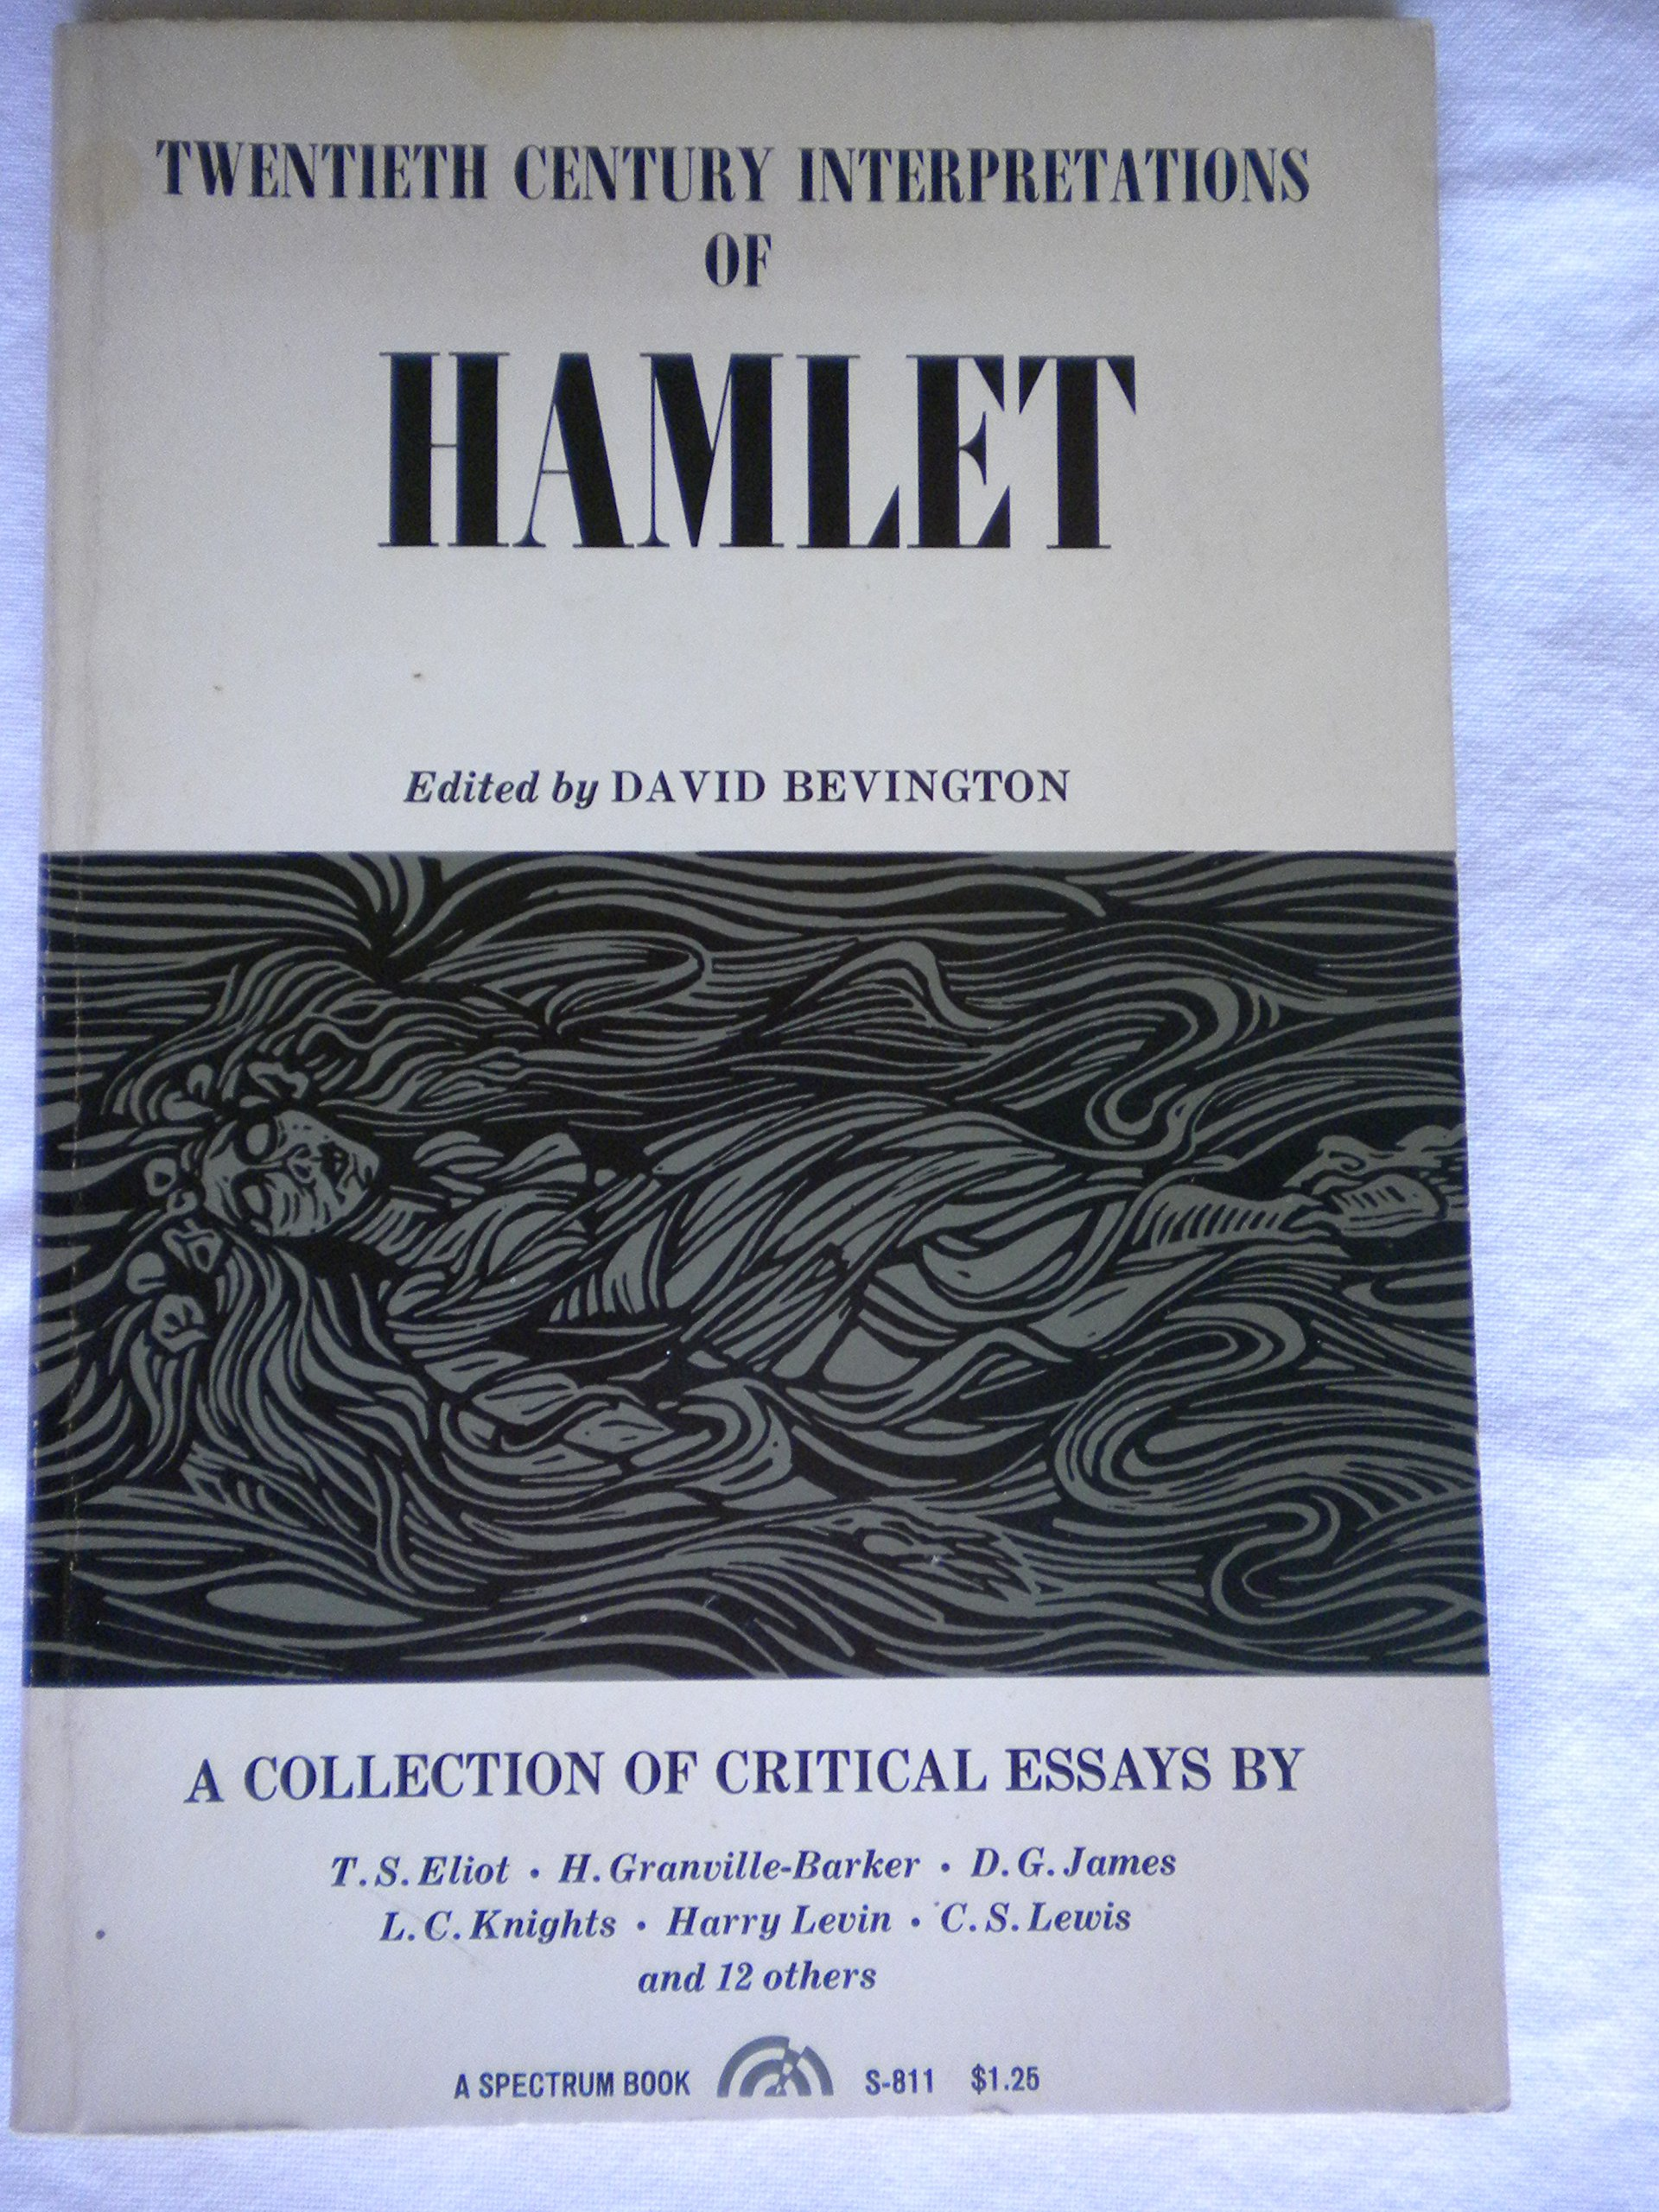 My Country Sri Lanka Essay English Twentieth Century Interpretations Of Hamlet A Collection Of Critical Essays  David Bevington Amazoncom Books Health And Fitness Essays also Essays On Science Fiction Twentieth Century Interpretations Of Hamlet A Collection Of  Health And Social Care Essays